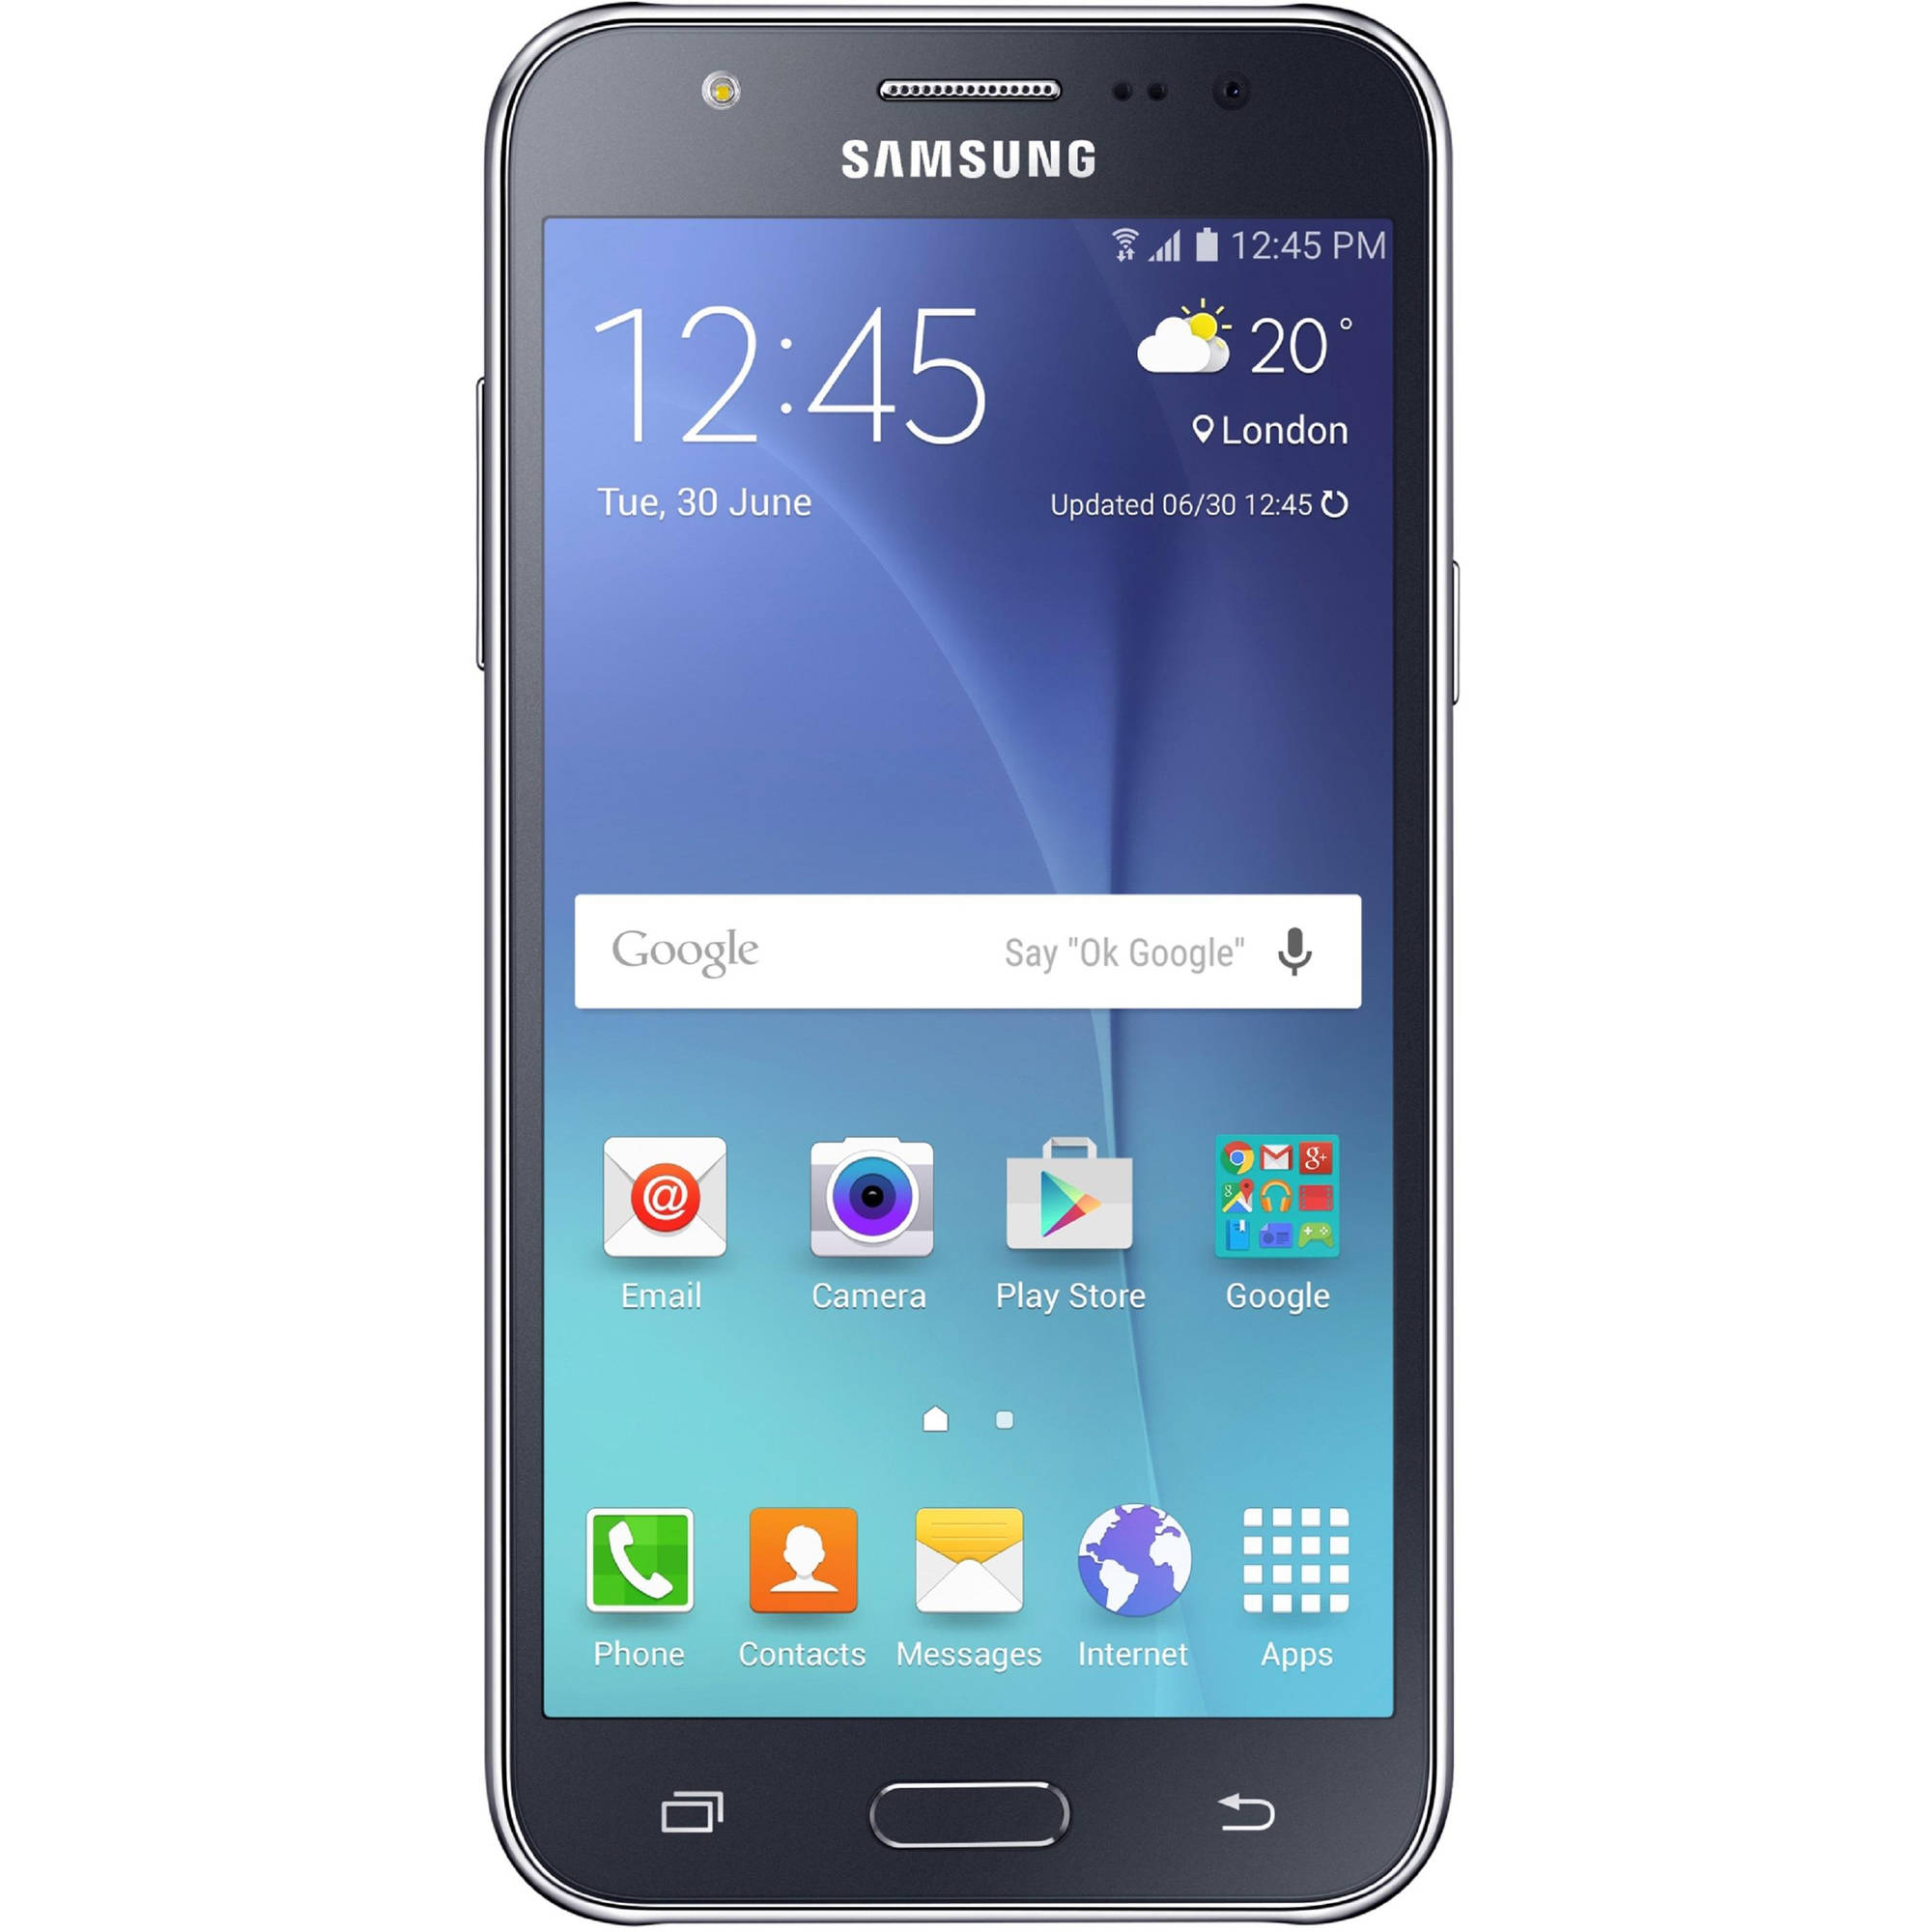 Samsung Galaxy J5 J500M 8GB GSM 4G LTE Android Smartphone (Unlocked)